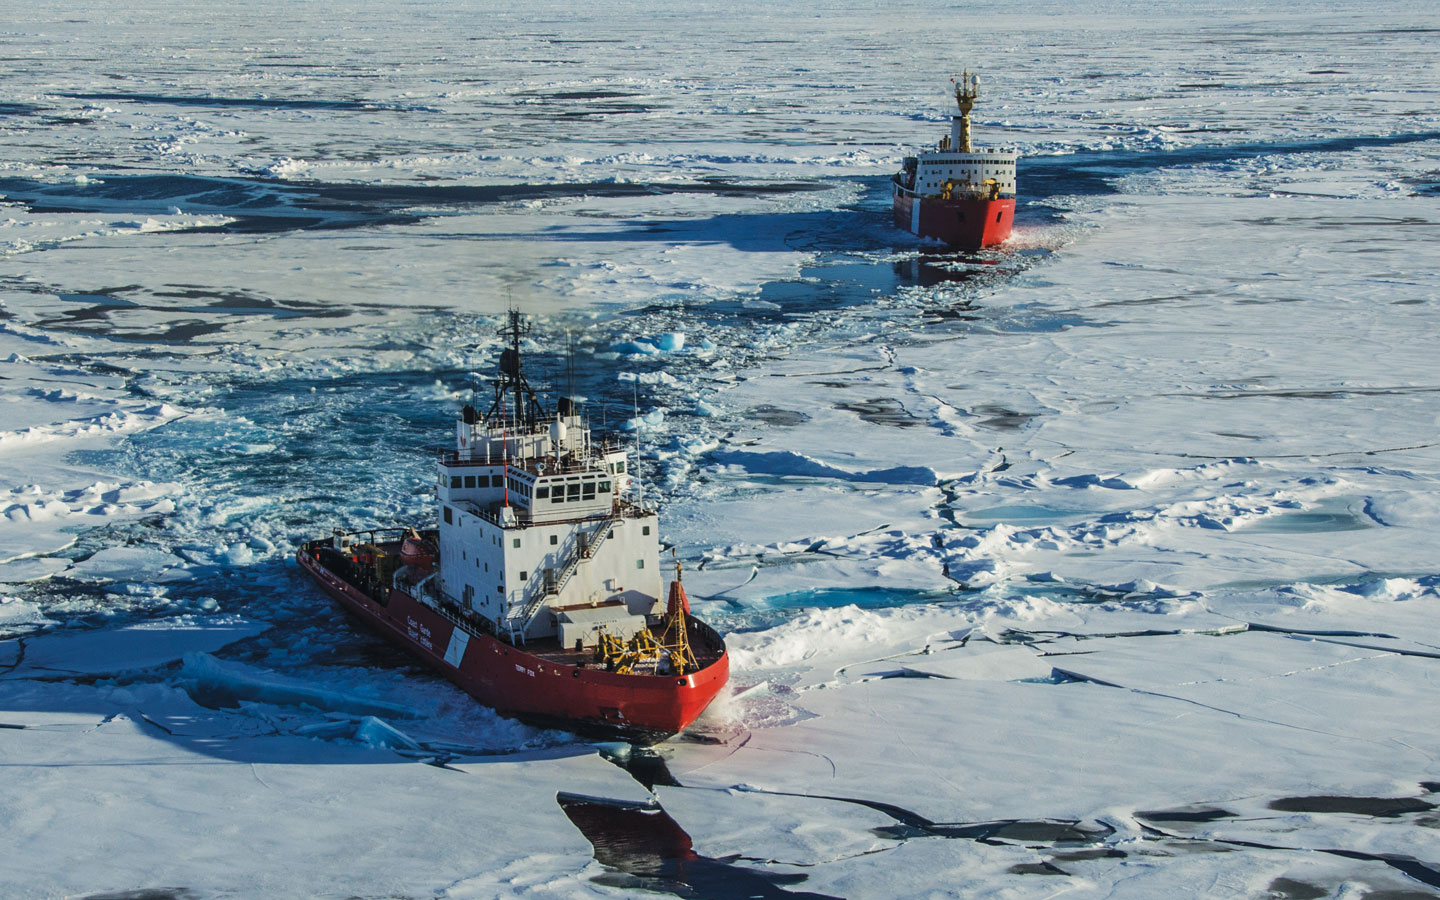 Canadian Coast guard ships breaking through the ice